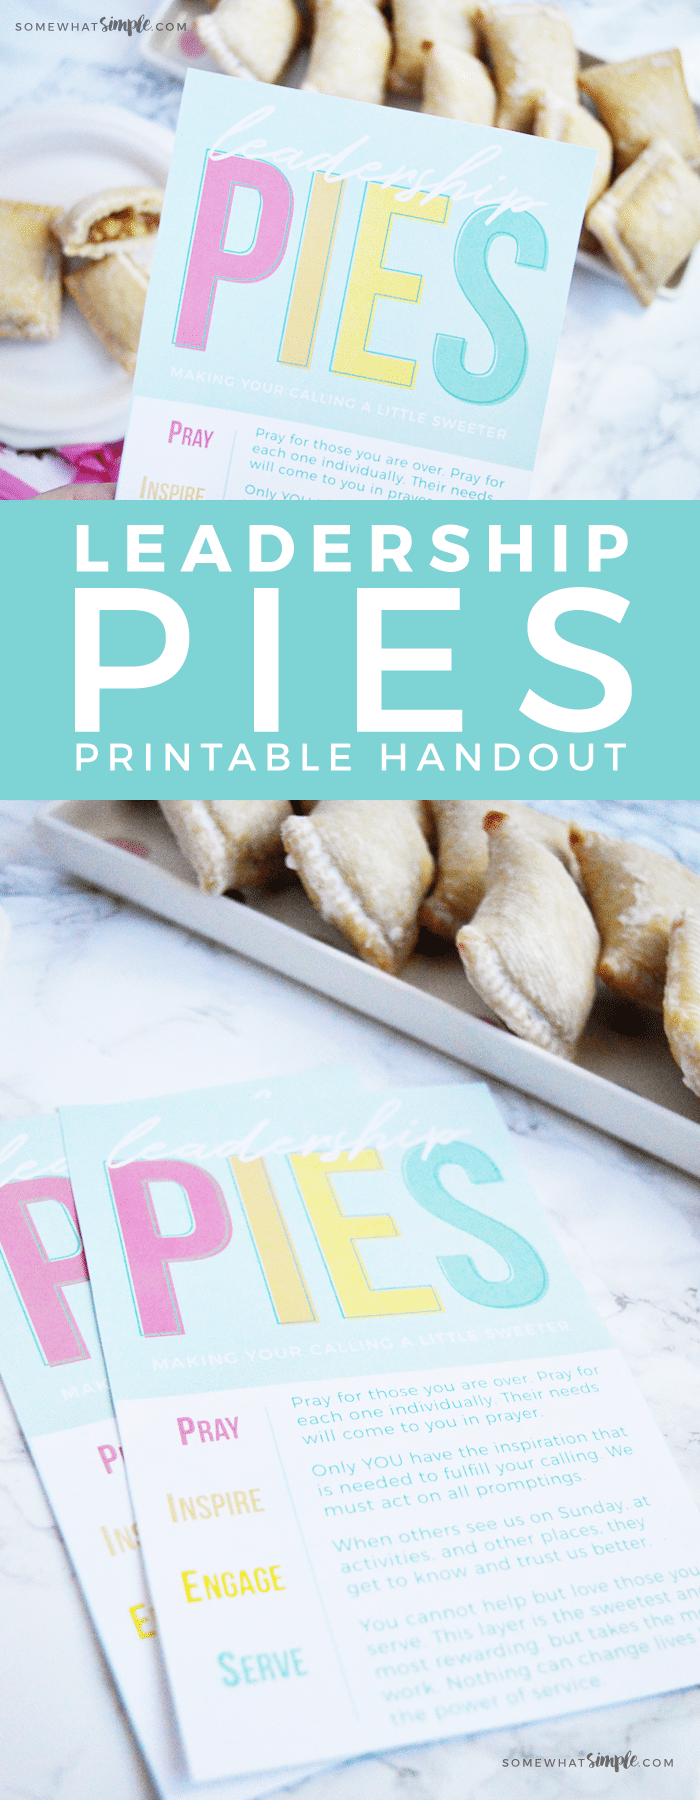 Looking for a way to help church leaders and teachers make the most of their callings? Download our Printable Handout For Leadership Training: Leadership Pies, and help make their calling a little sweeter. via @somewhatsimple